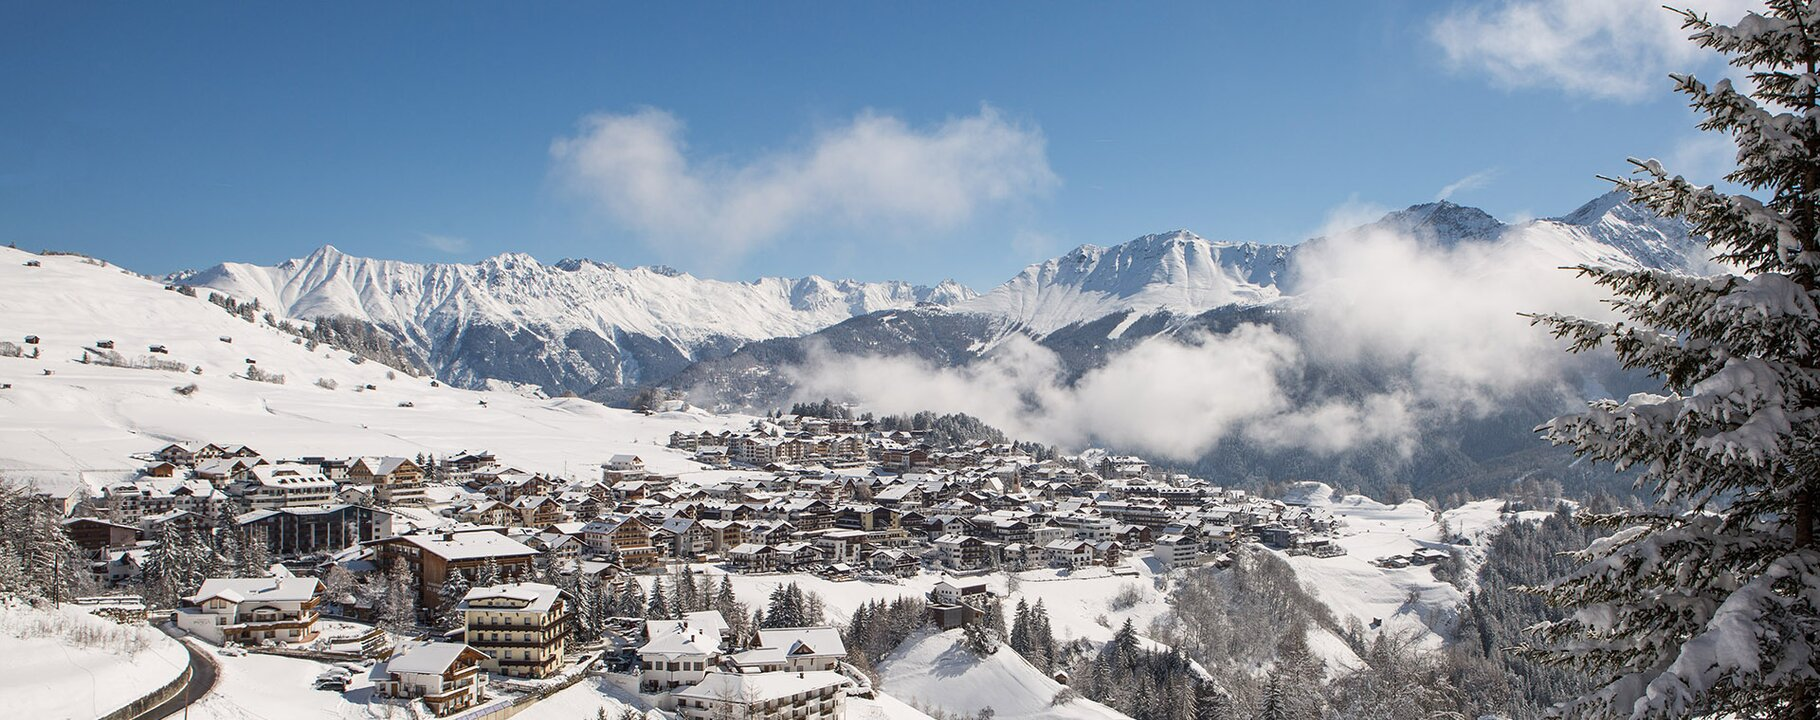 village view of Serfaus in winter | © Andreas Kirschner - www.webart.at